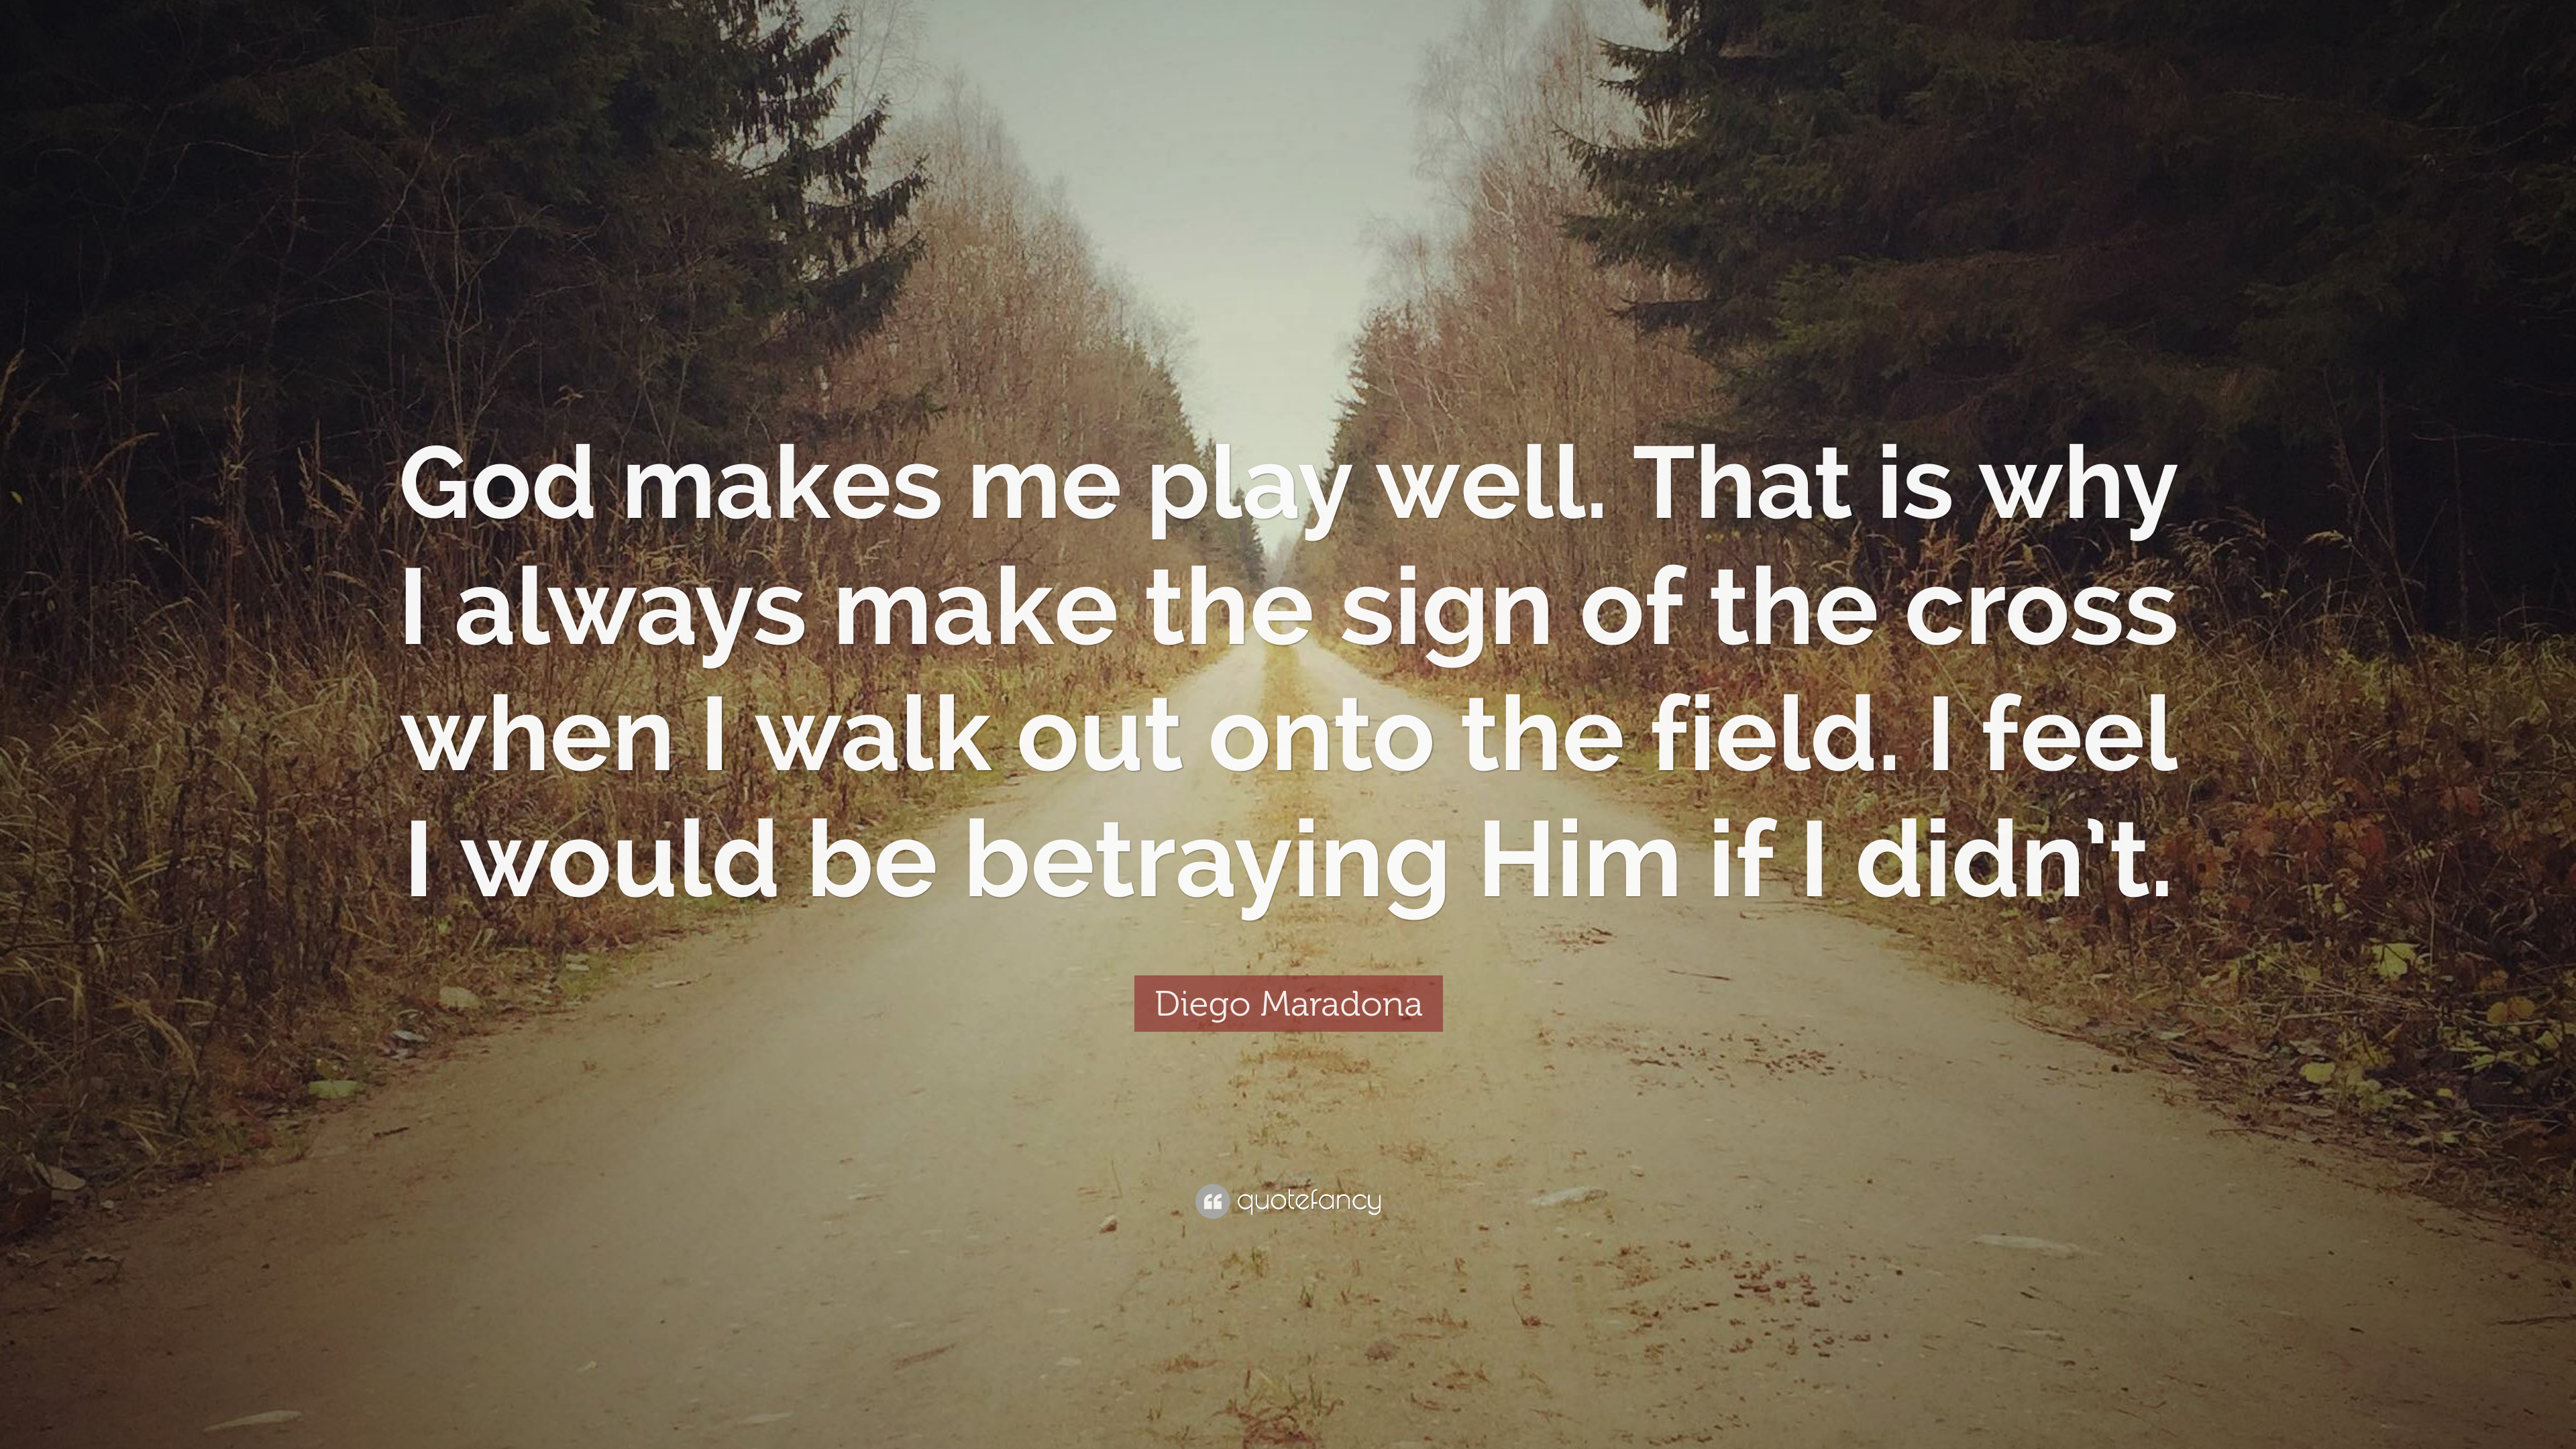 3471937 Diego Maradona Quote God makes me play well That is why I always